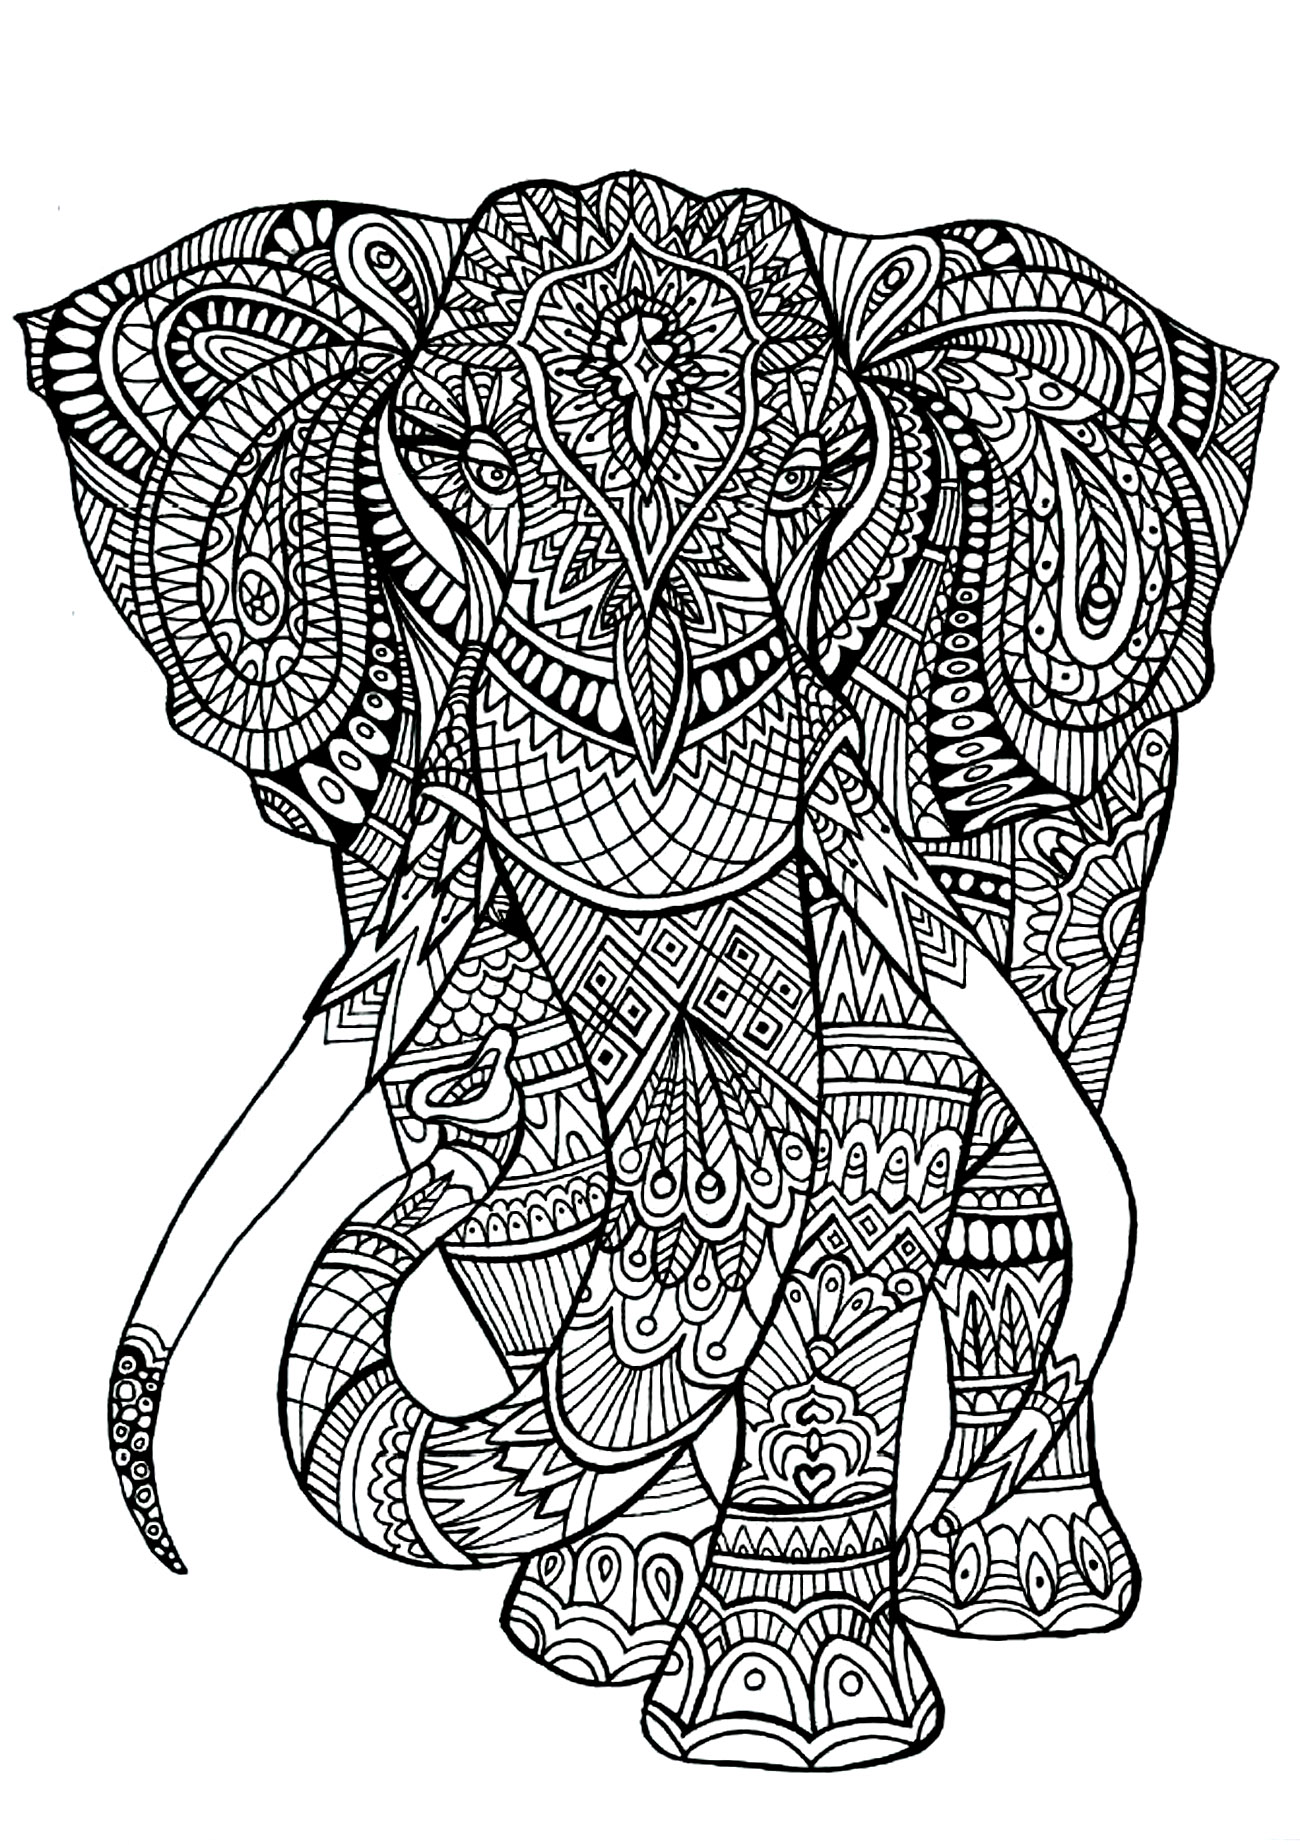 adult coloring pages elephants Elephant patterns   Elephants Adult Coloring Pages adult coloring pages elephants